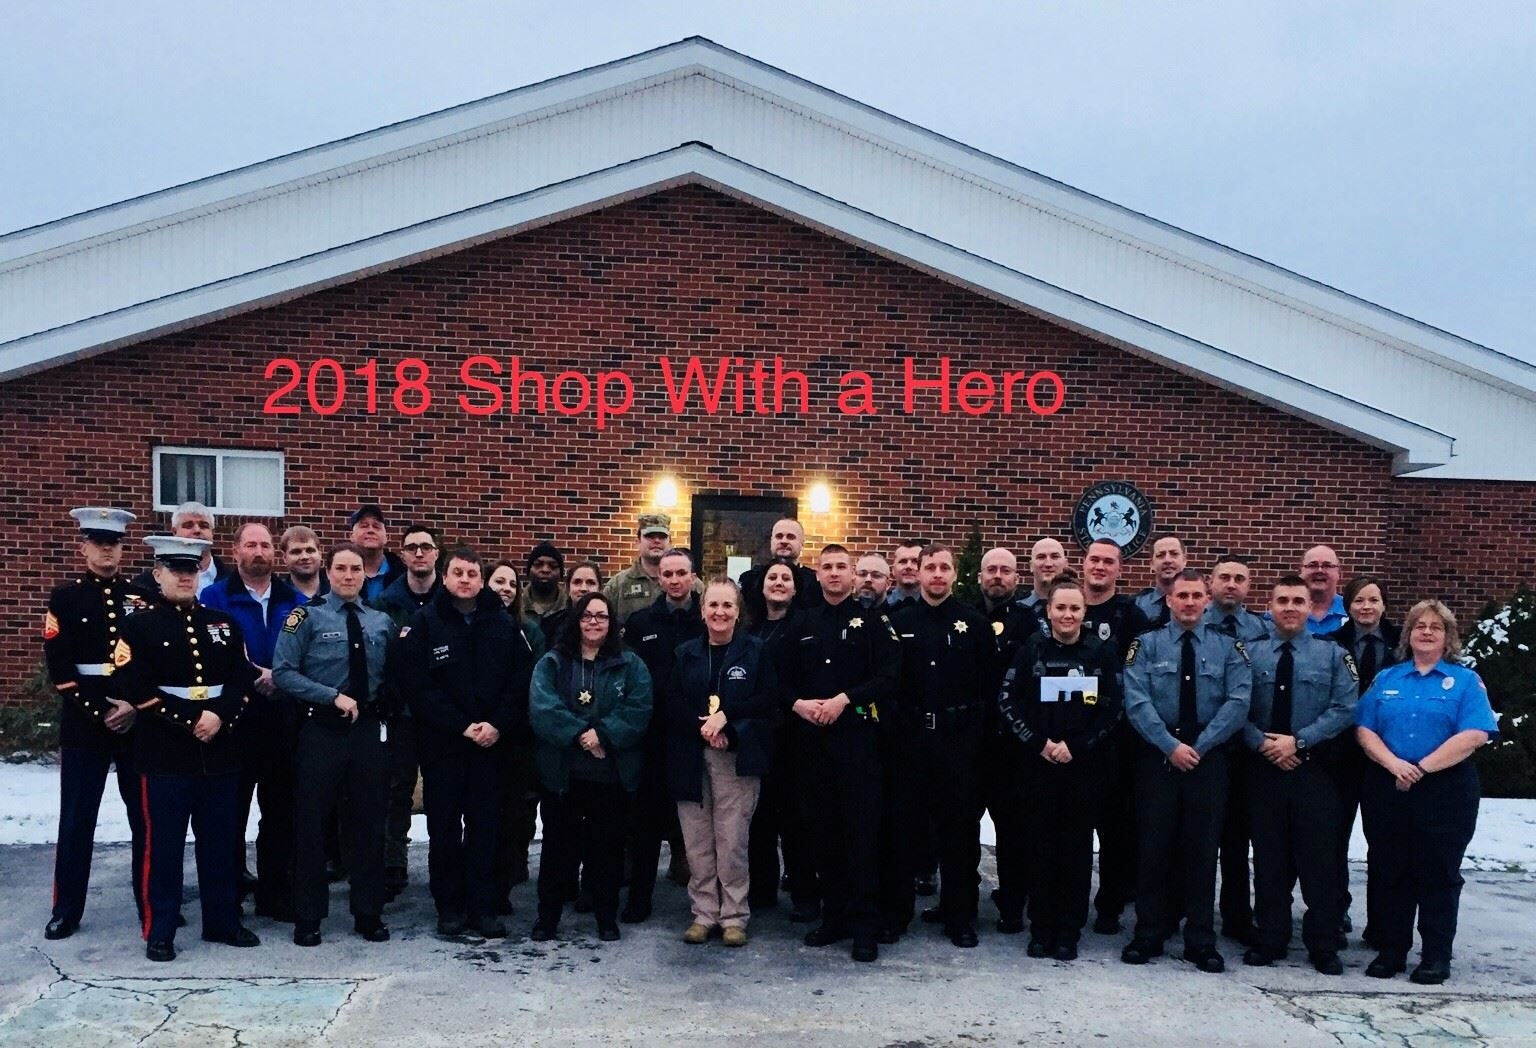 Shop with a Hero 2018